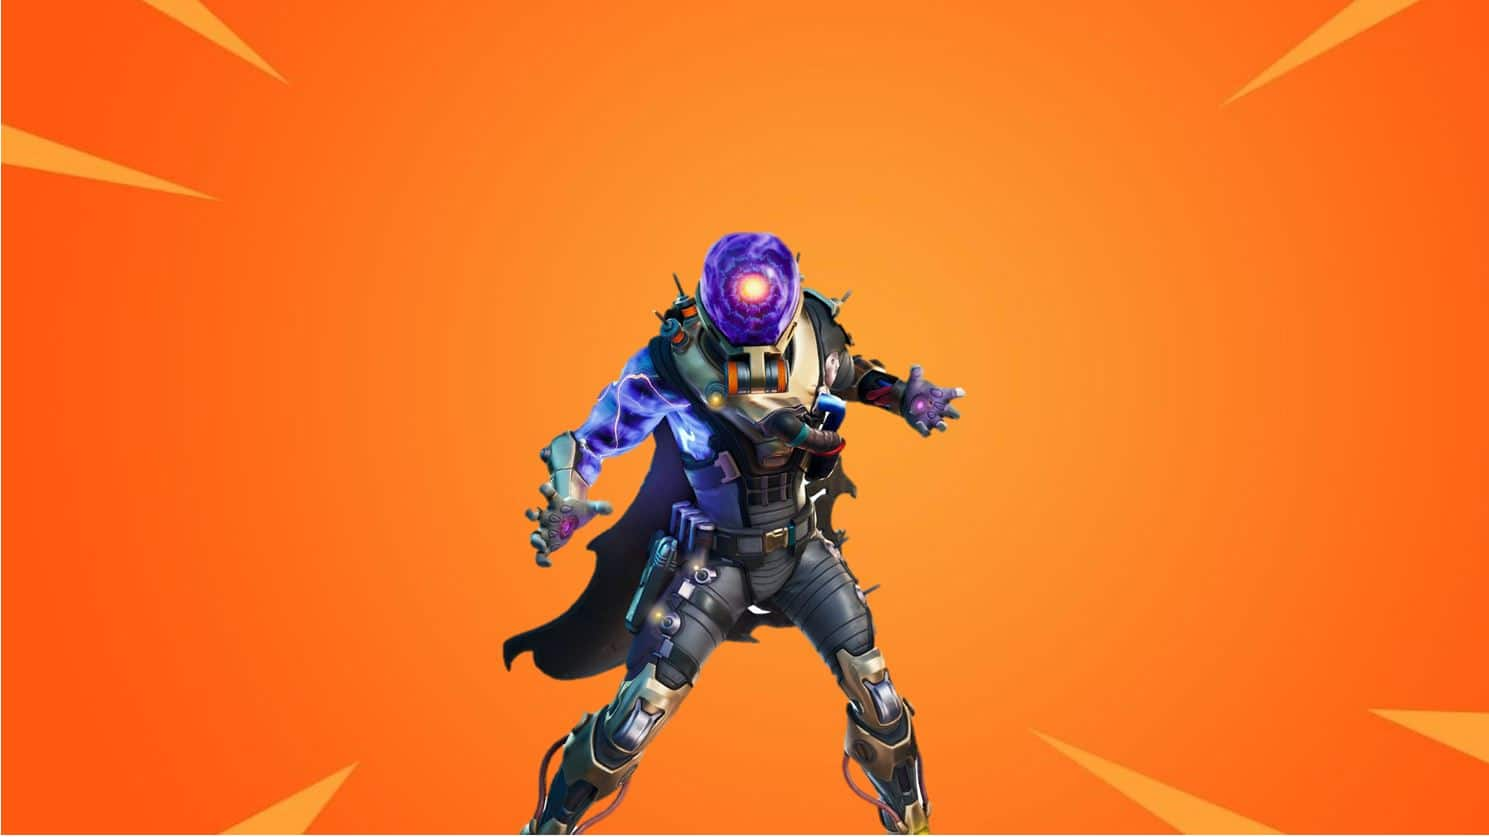 Fortnite v12.61 Leaked Skins and Cosmetics